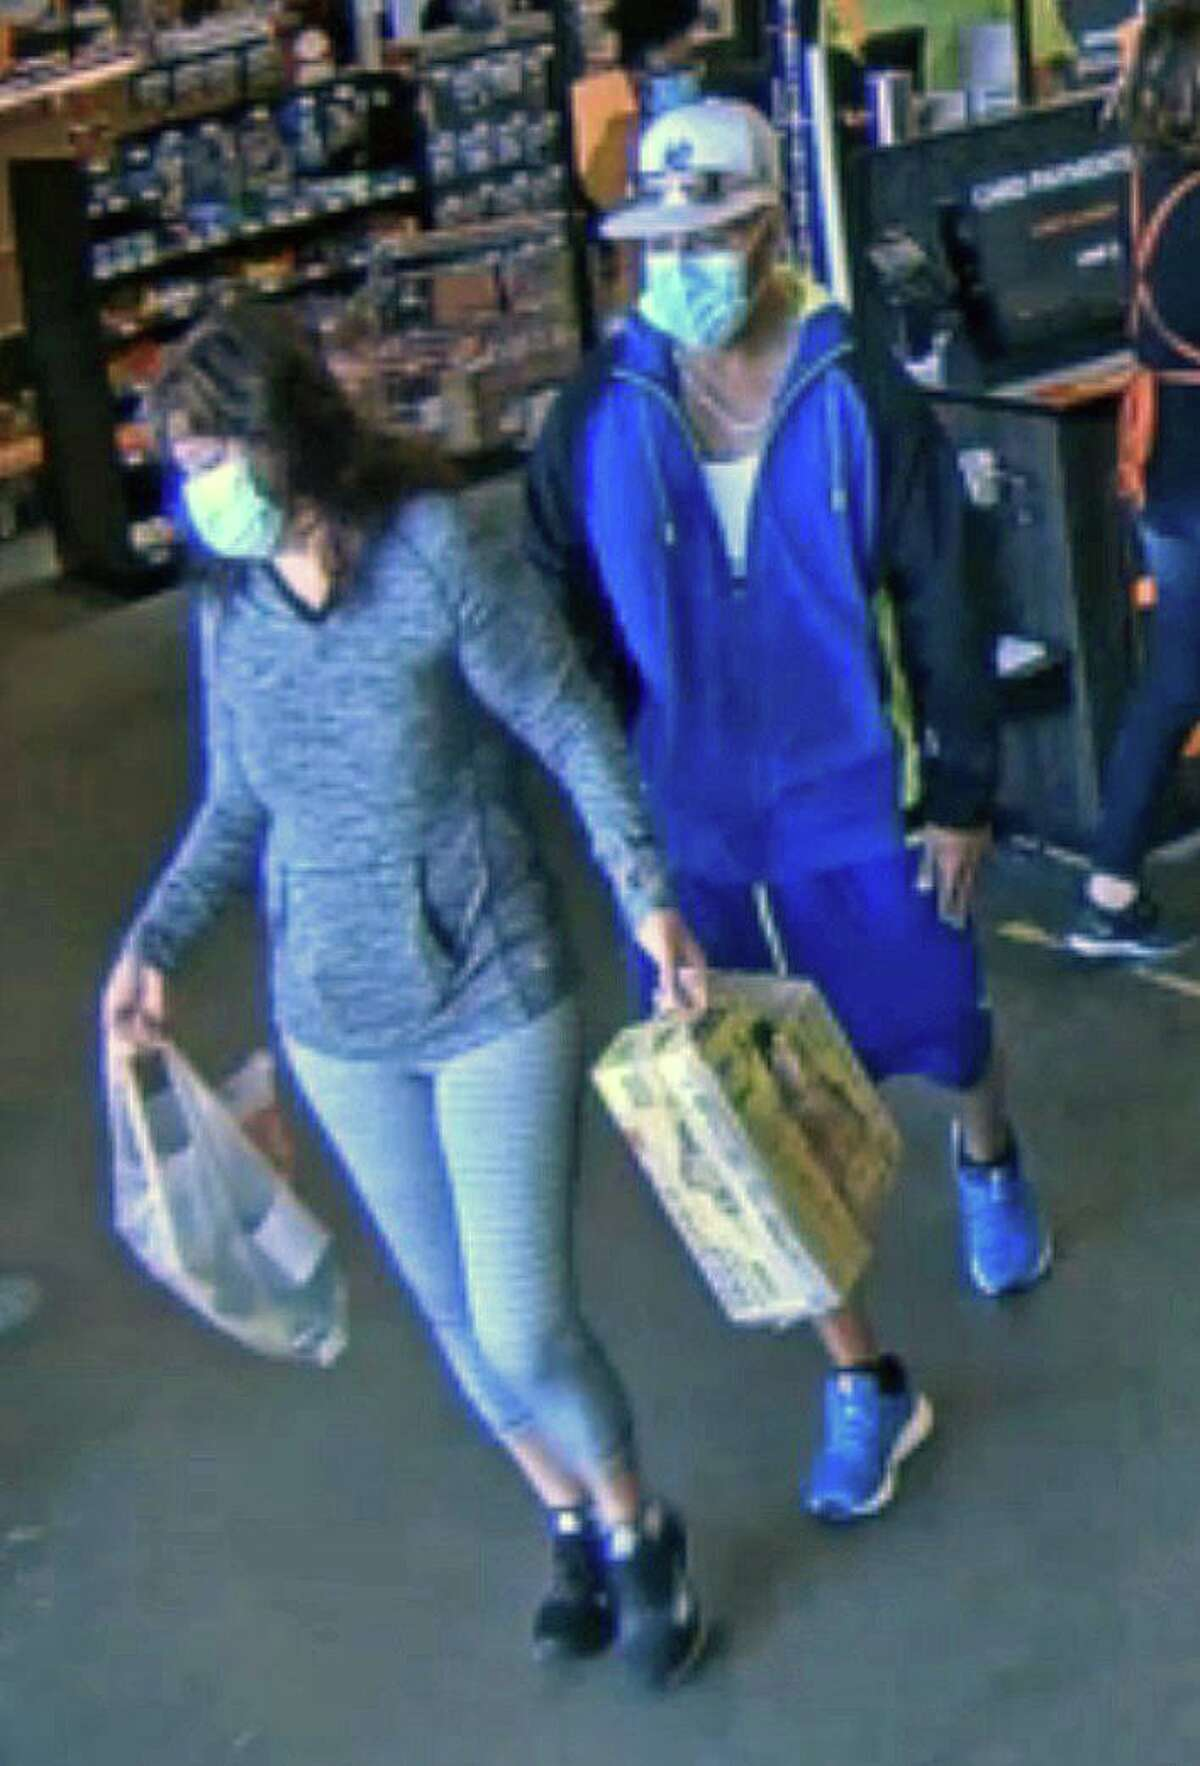 Police ask anyone who might recognize either of these two suspects to call 203-385-4142.